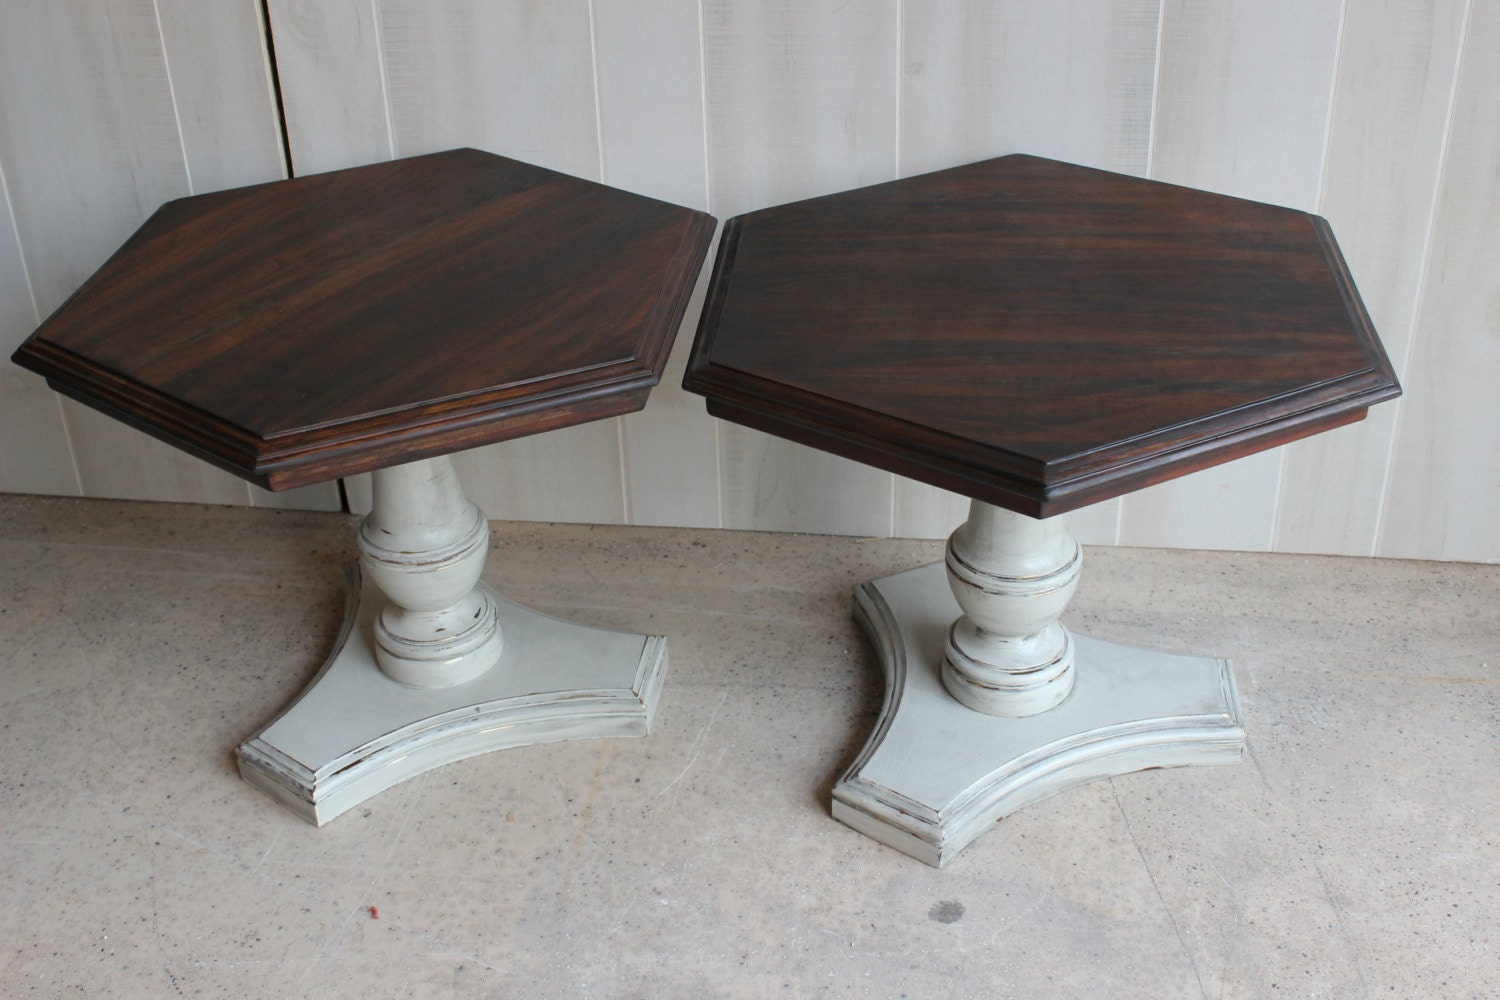 Vintage Coffee Tables Ethan Allen Pedestal By Thrivedesignmarket